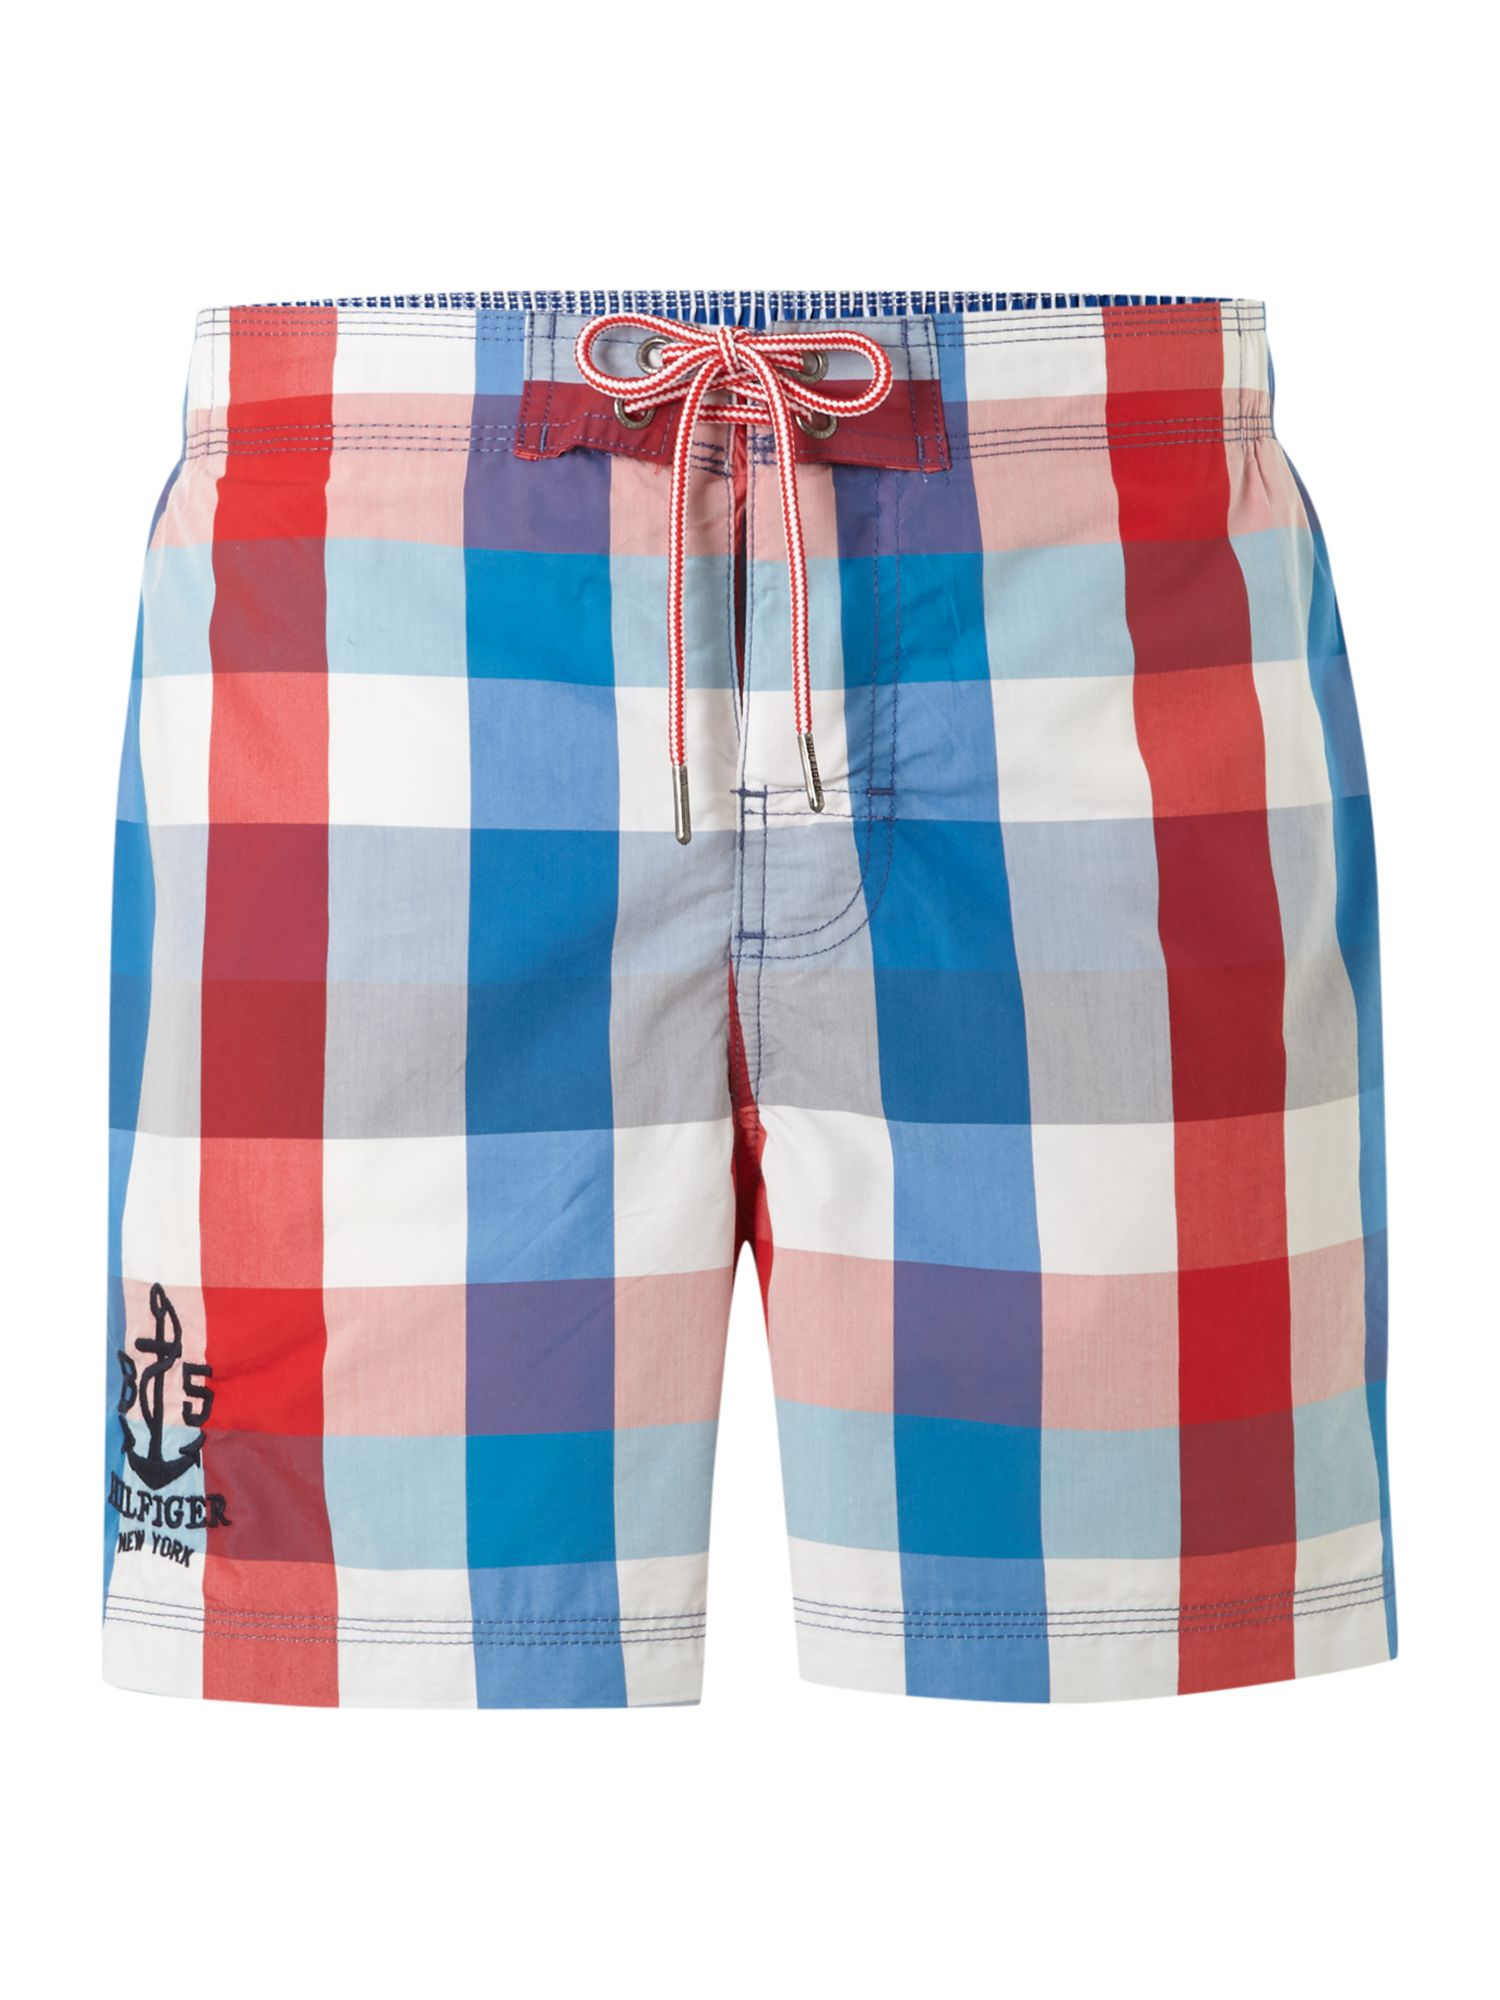 Mack multi gingham swim trunk